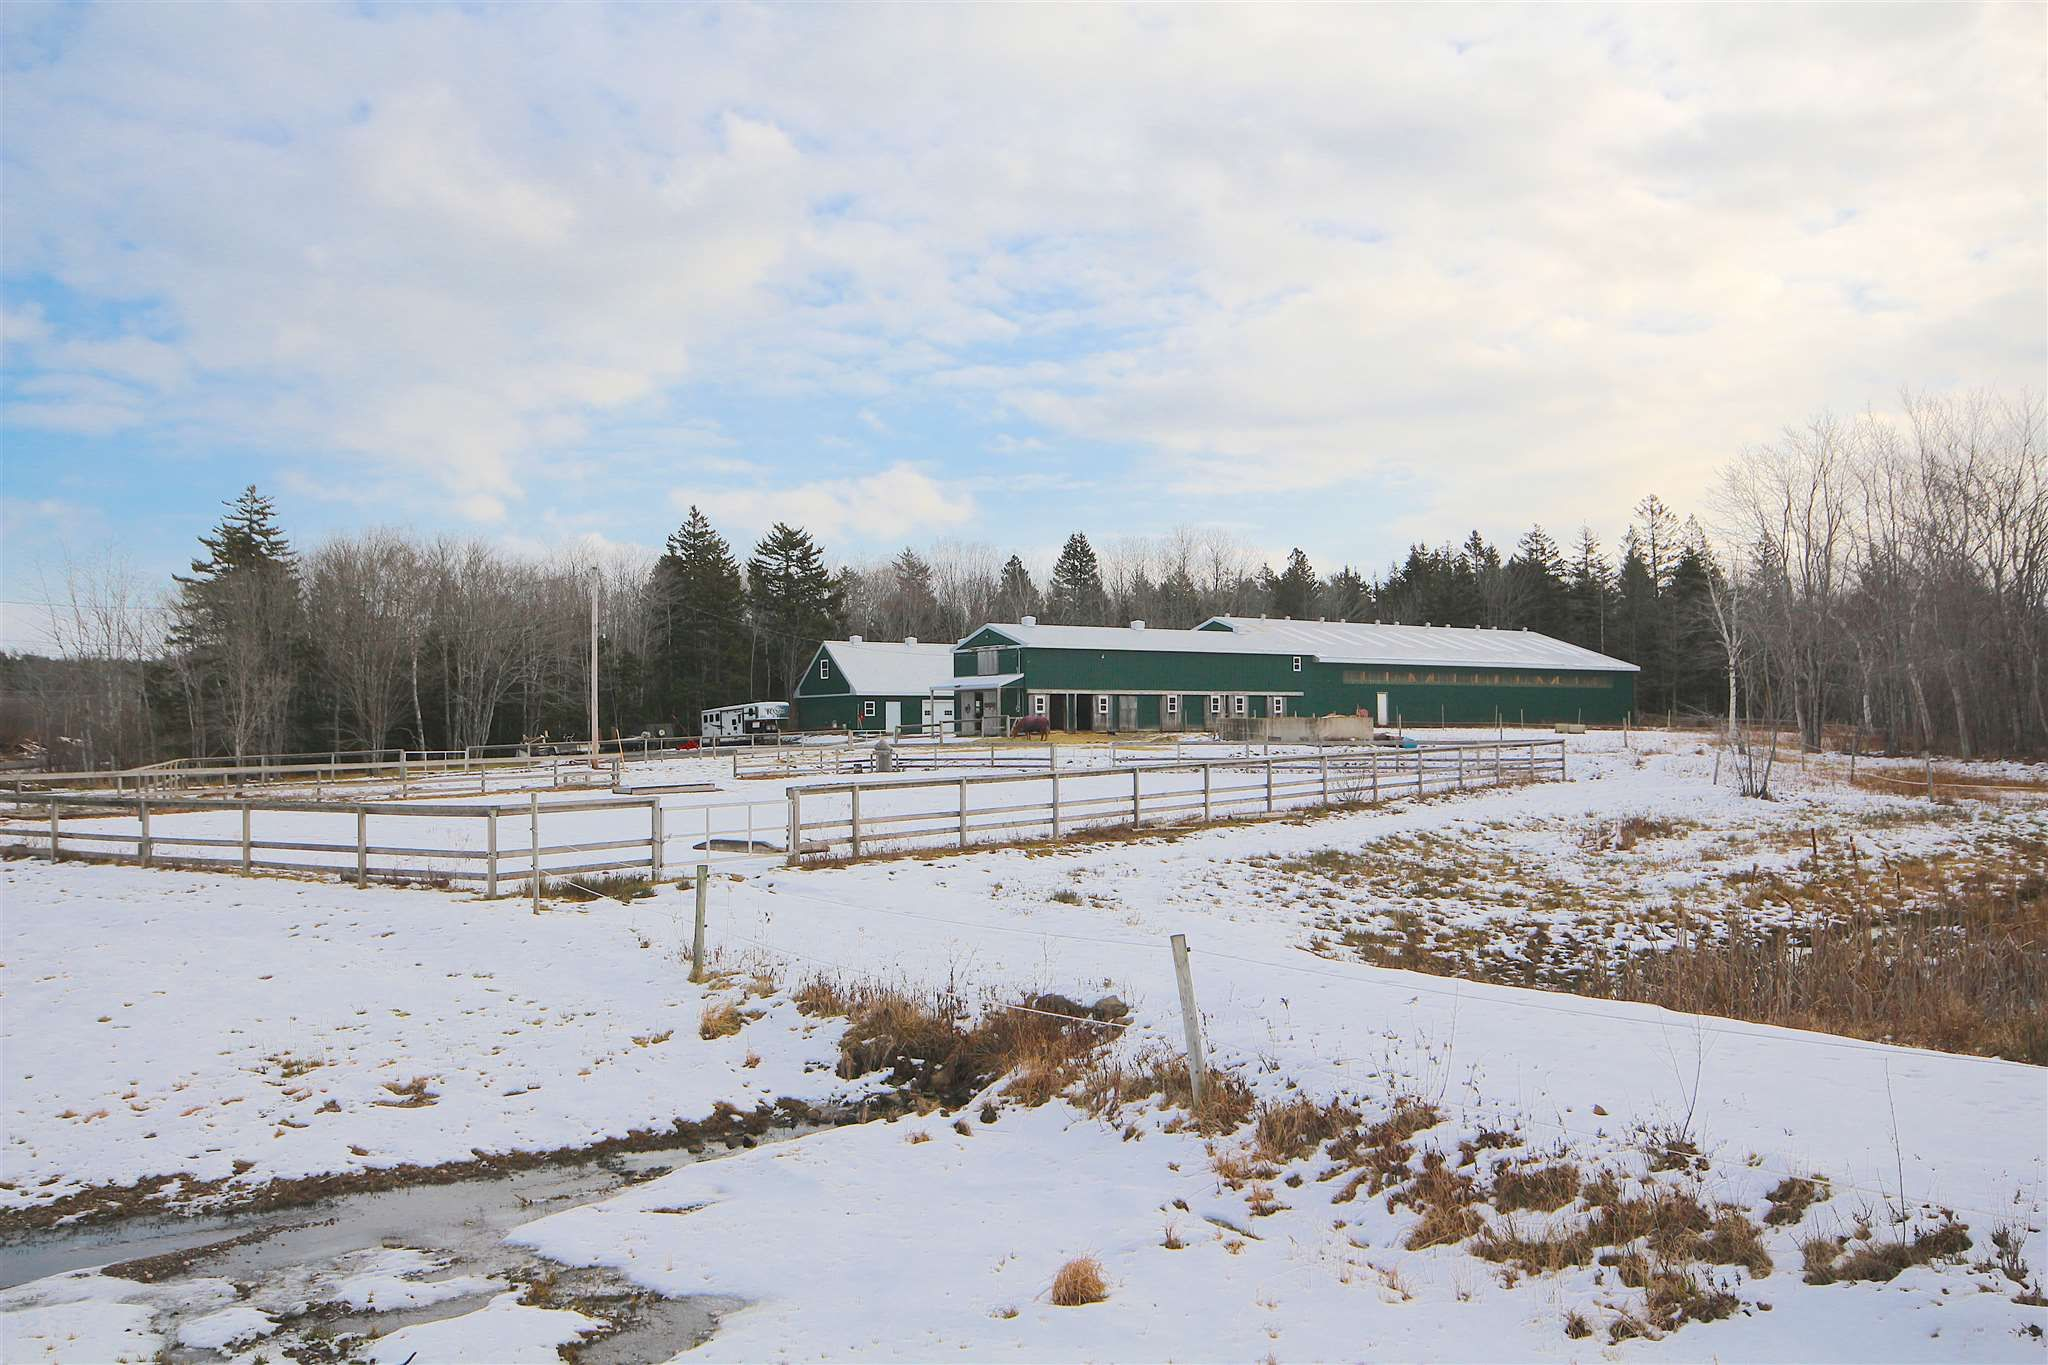 Main Photo: 12018 Highway 215 in Sea Brook: 401-Digby County Farm for sale (Annapolis Valley)  : MLS®# 202100618